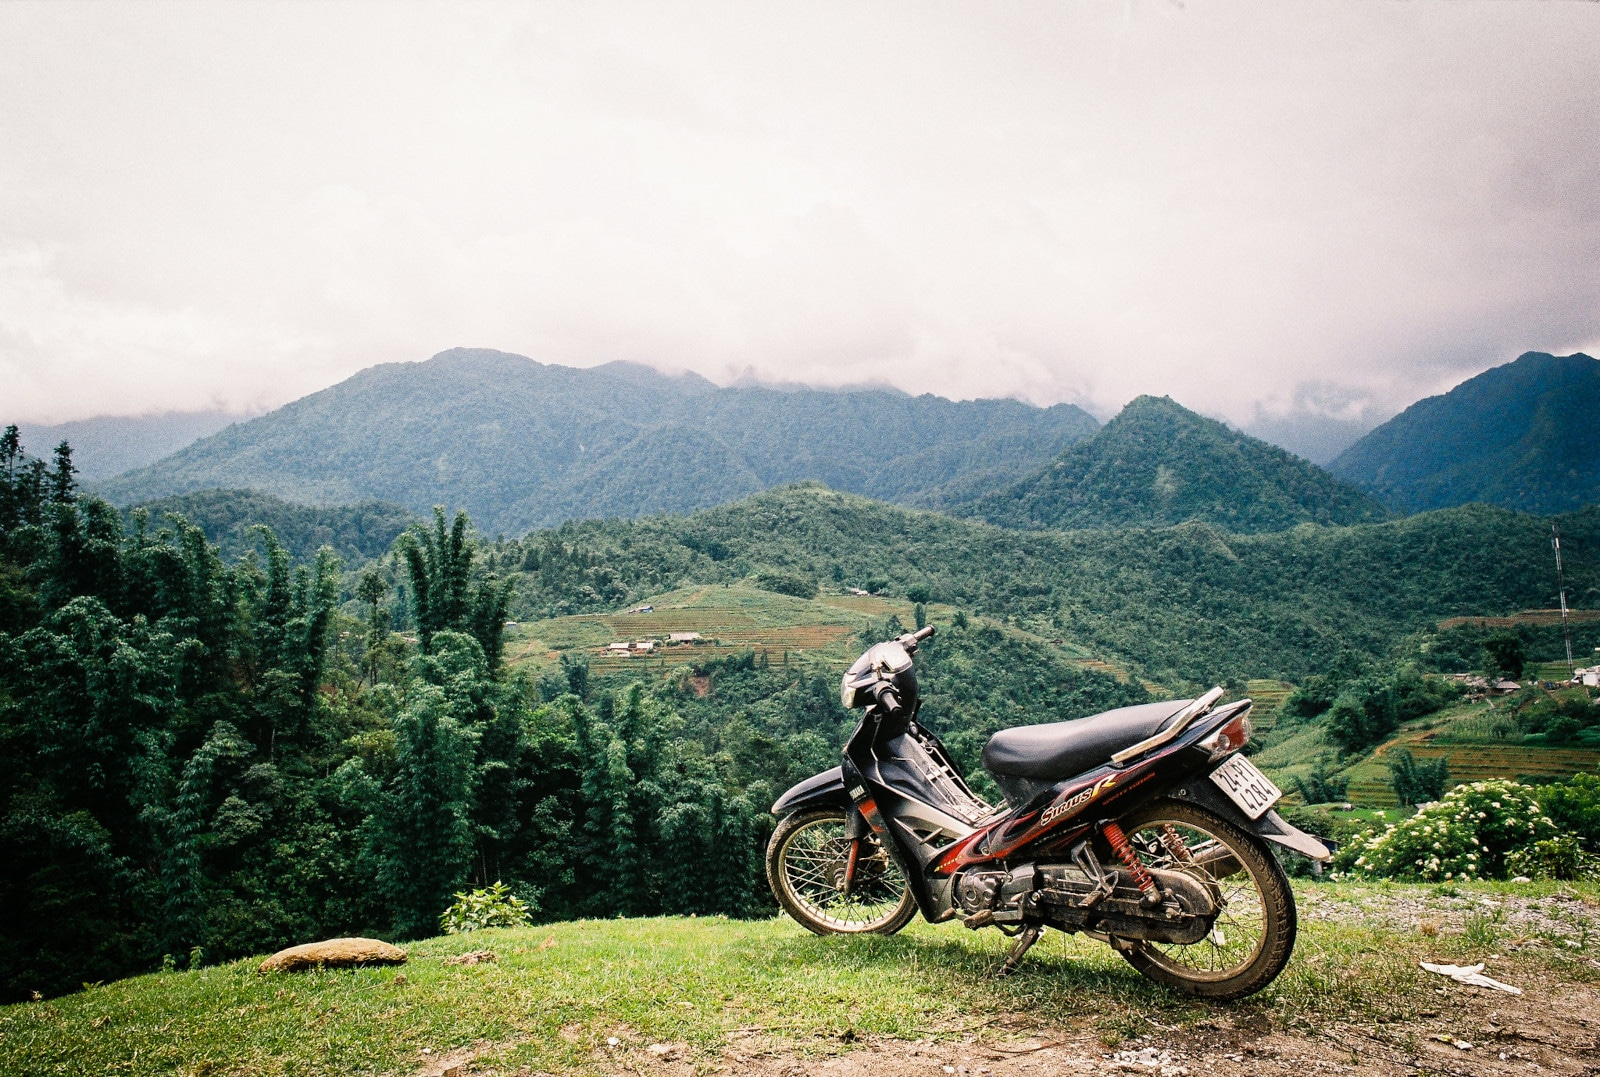 Image of a motorbike parked in front of the mountains in Sapa, Vietnam